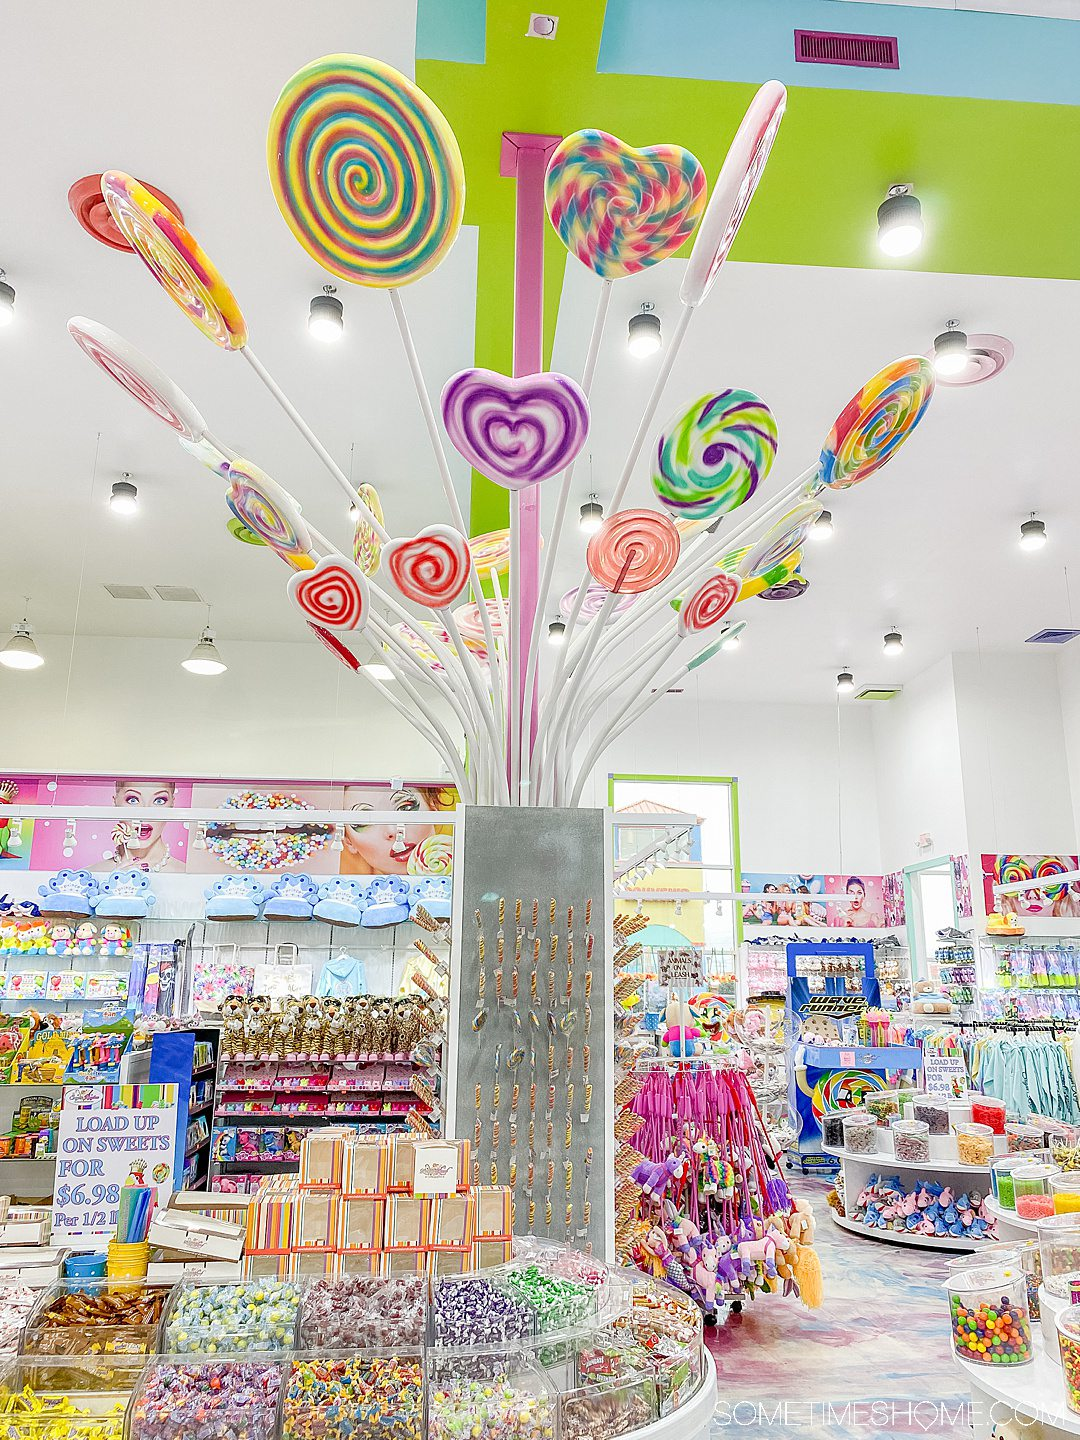 Display inside a candy store with colorful lollipops coming out of the top of a column.